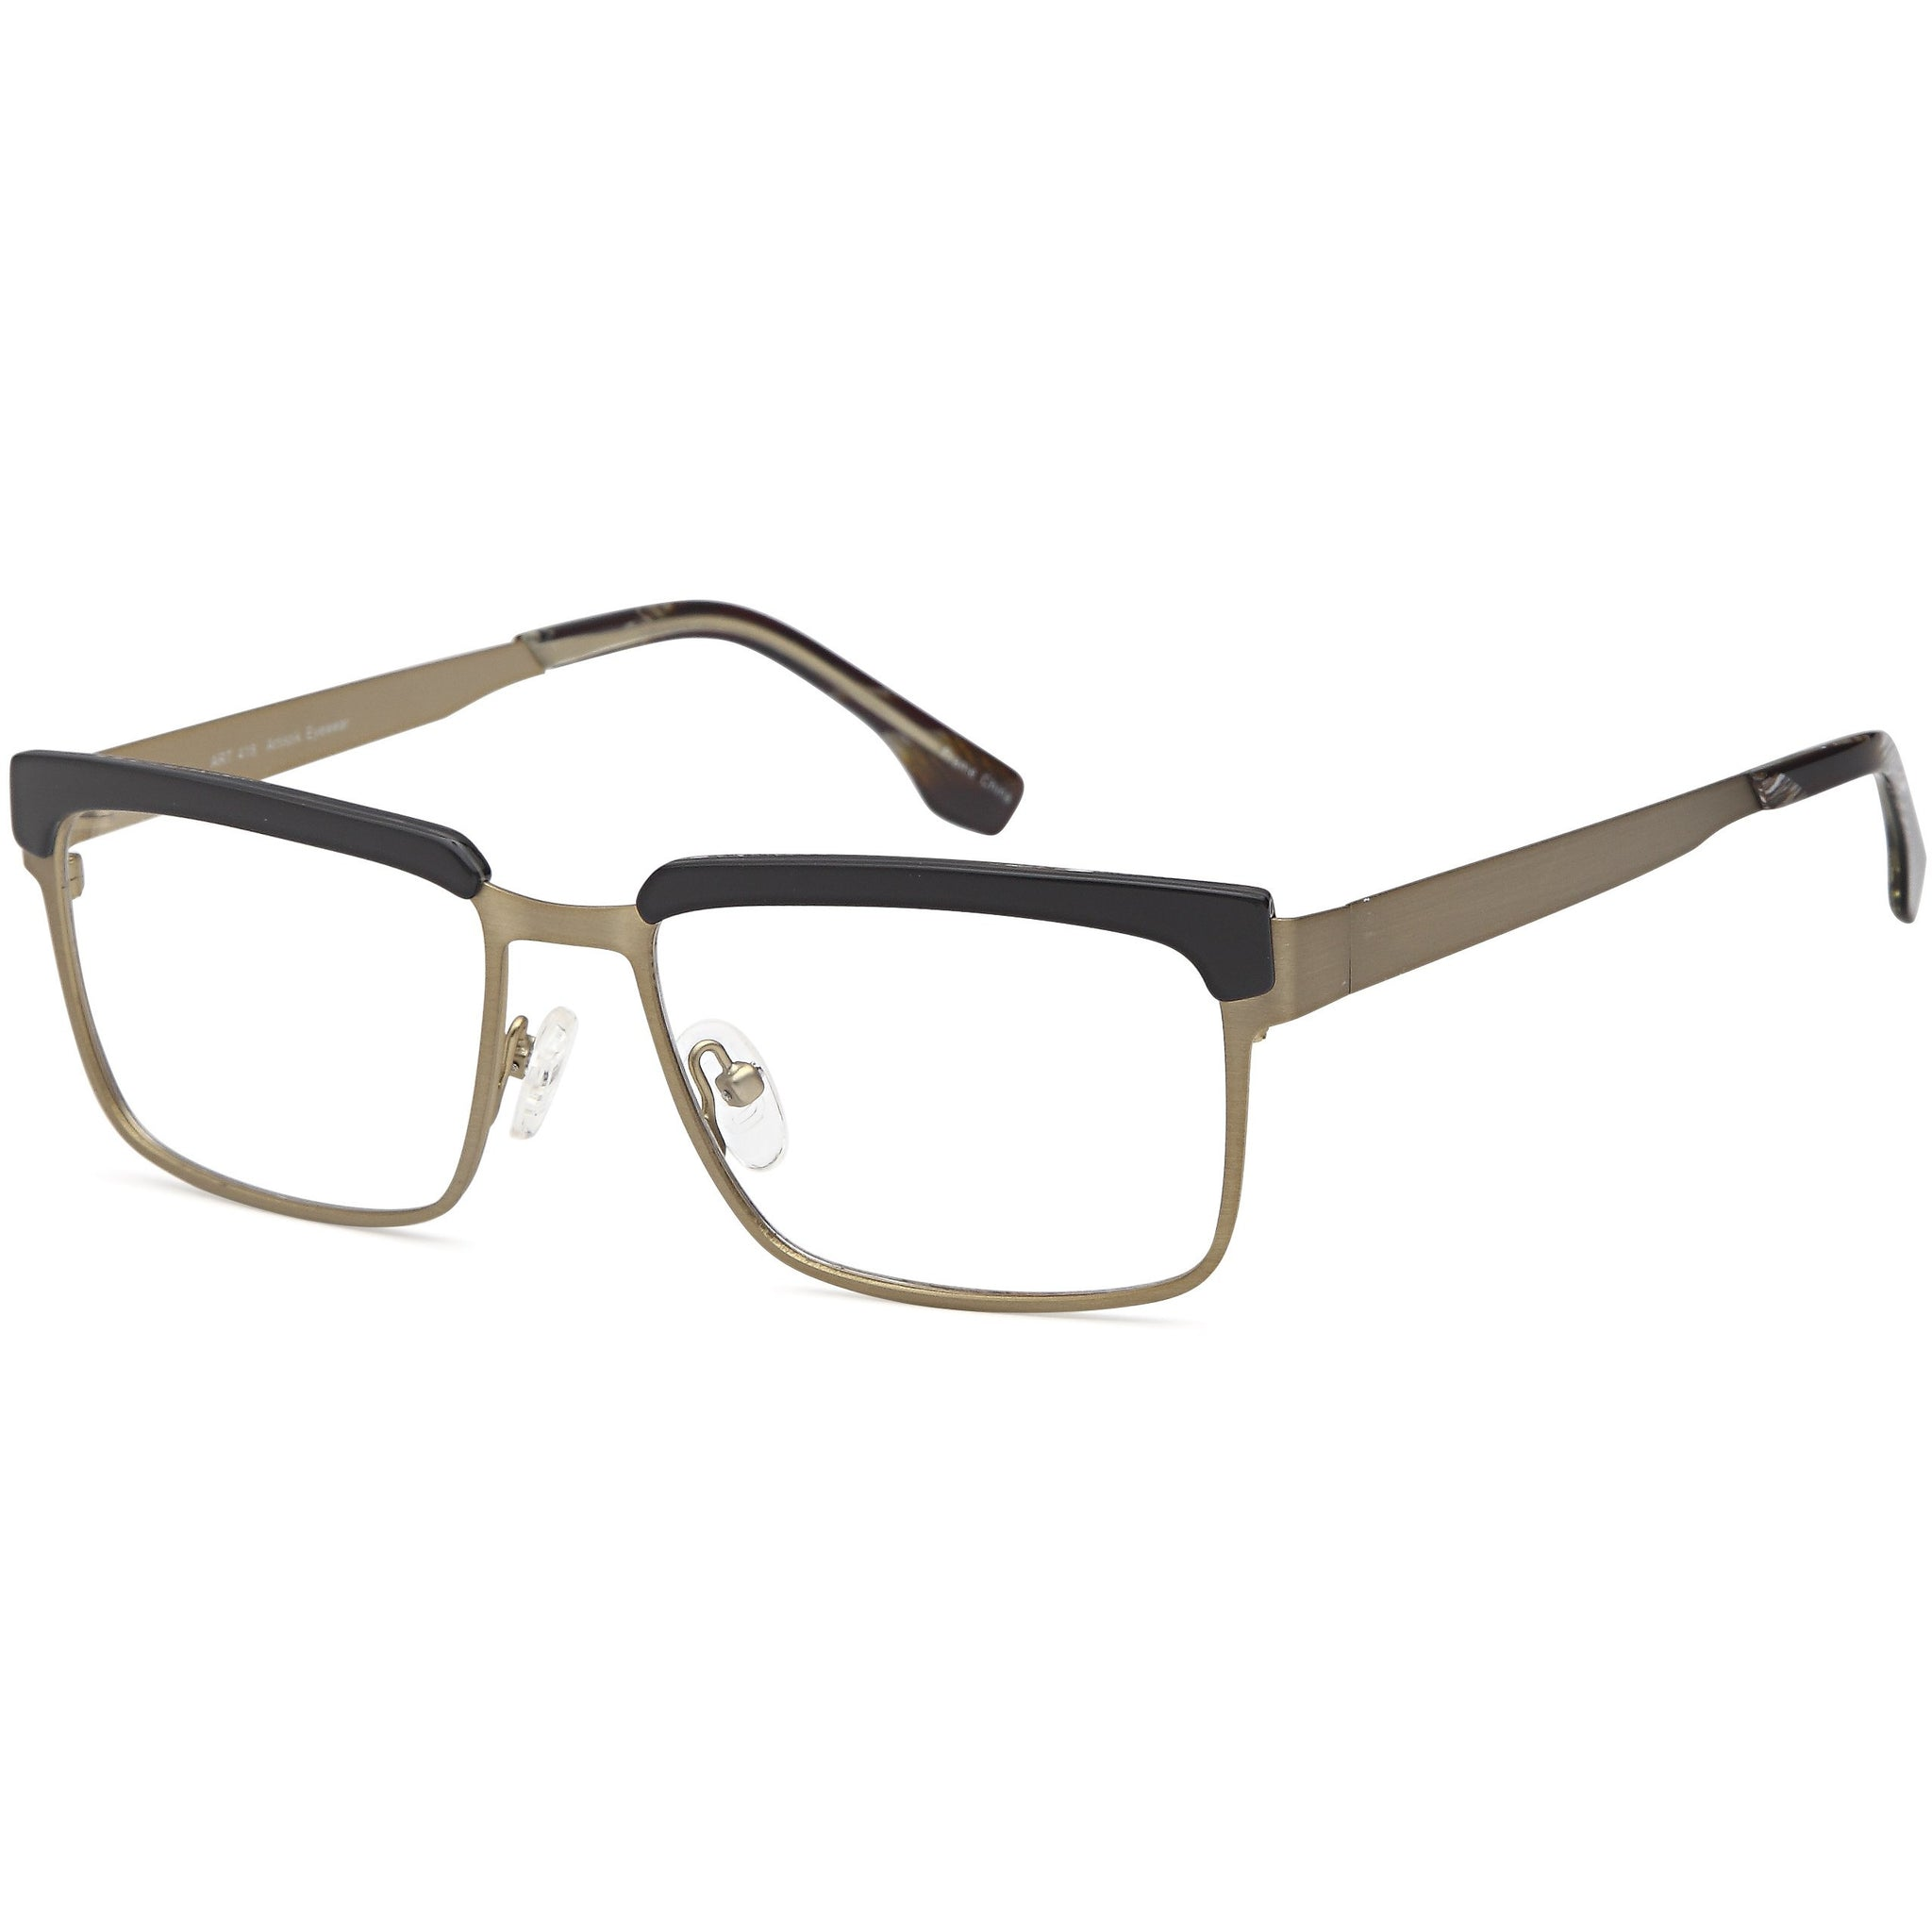 Sophistics Prescription Glasses ART 418 Frame